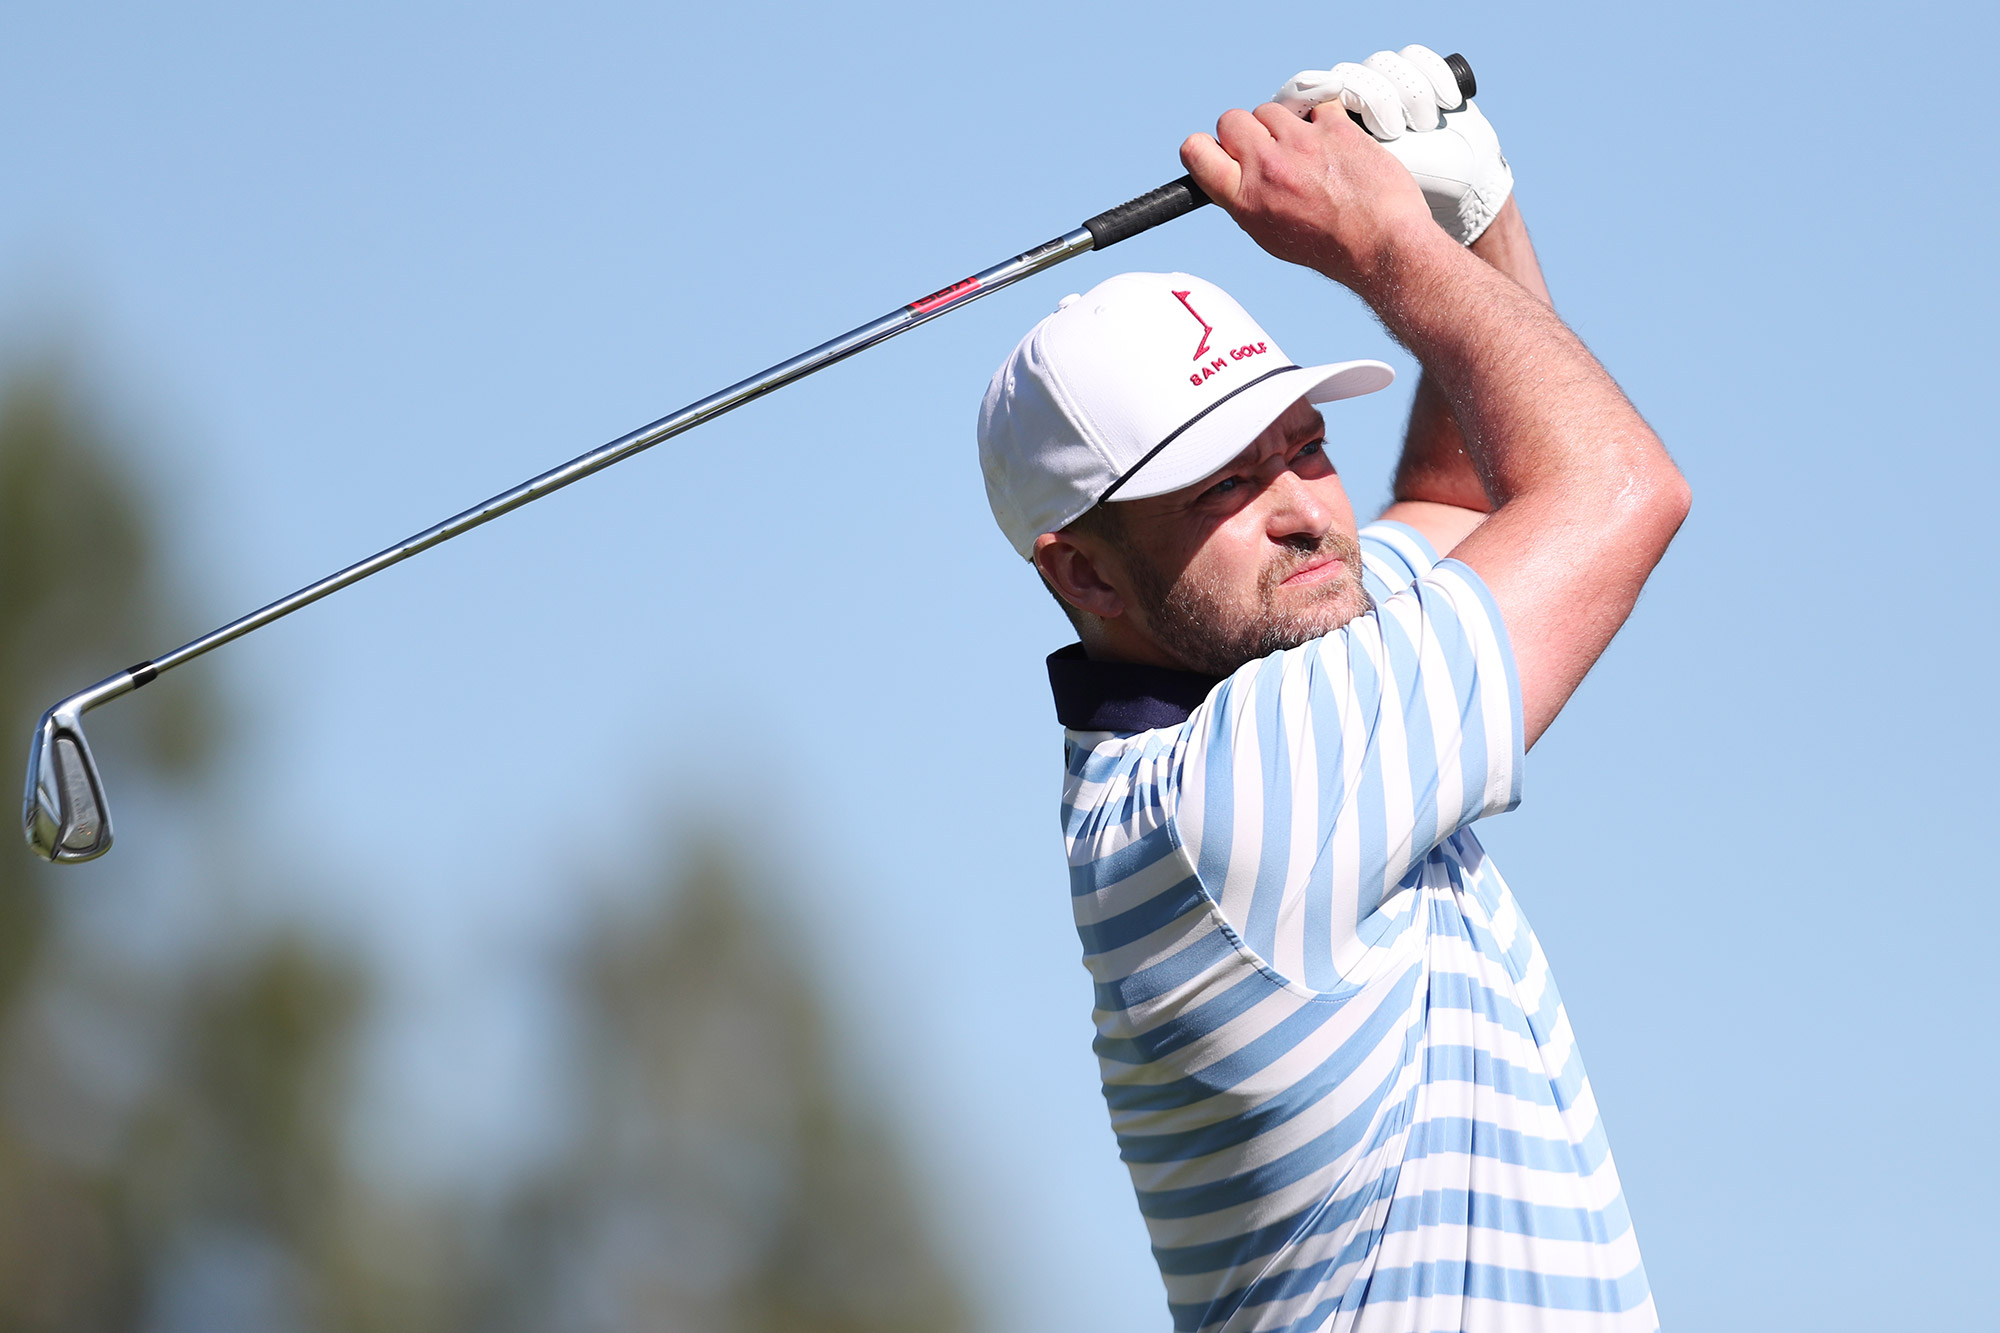 Justin Timberlake tees off from the first hole during the final round of the American Century Championship at Edgewood Tahoe South golf course on July 11, 2020 in South Lake Tahoe